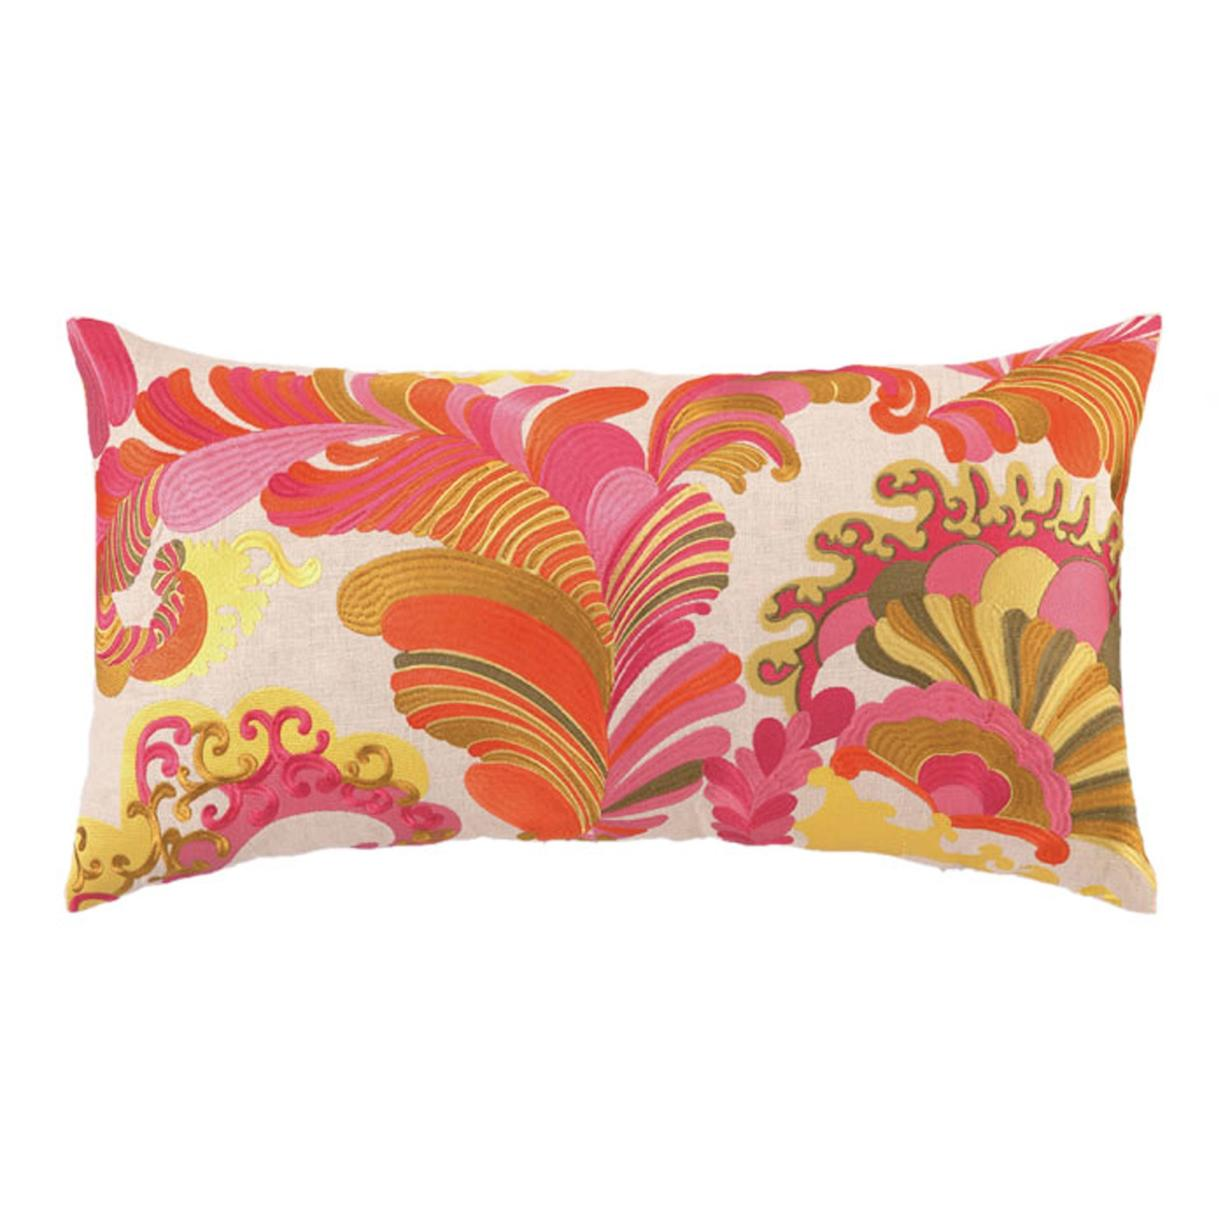 Wayfair.com Trina Turk's '70s-style print linen pillow that hits the Pop Art mark and makes a great accent for those wanting to add a touch or two of the decor style to their spaces.